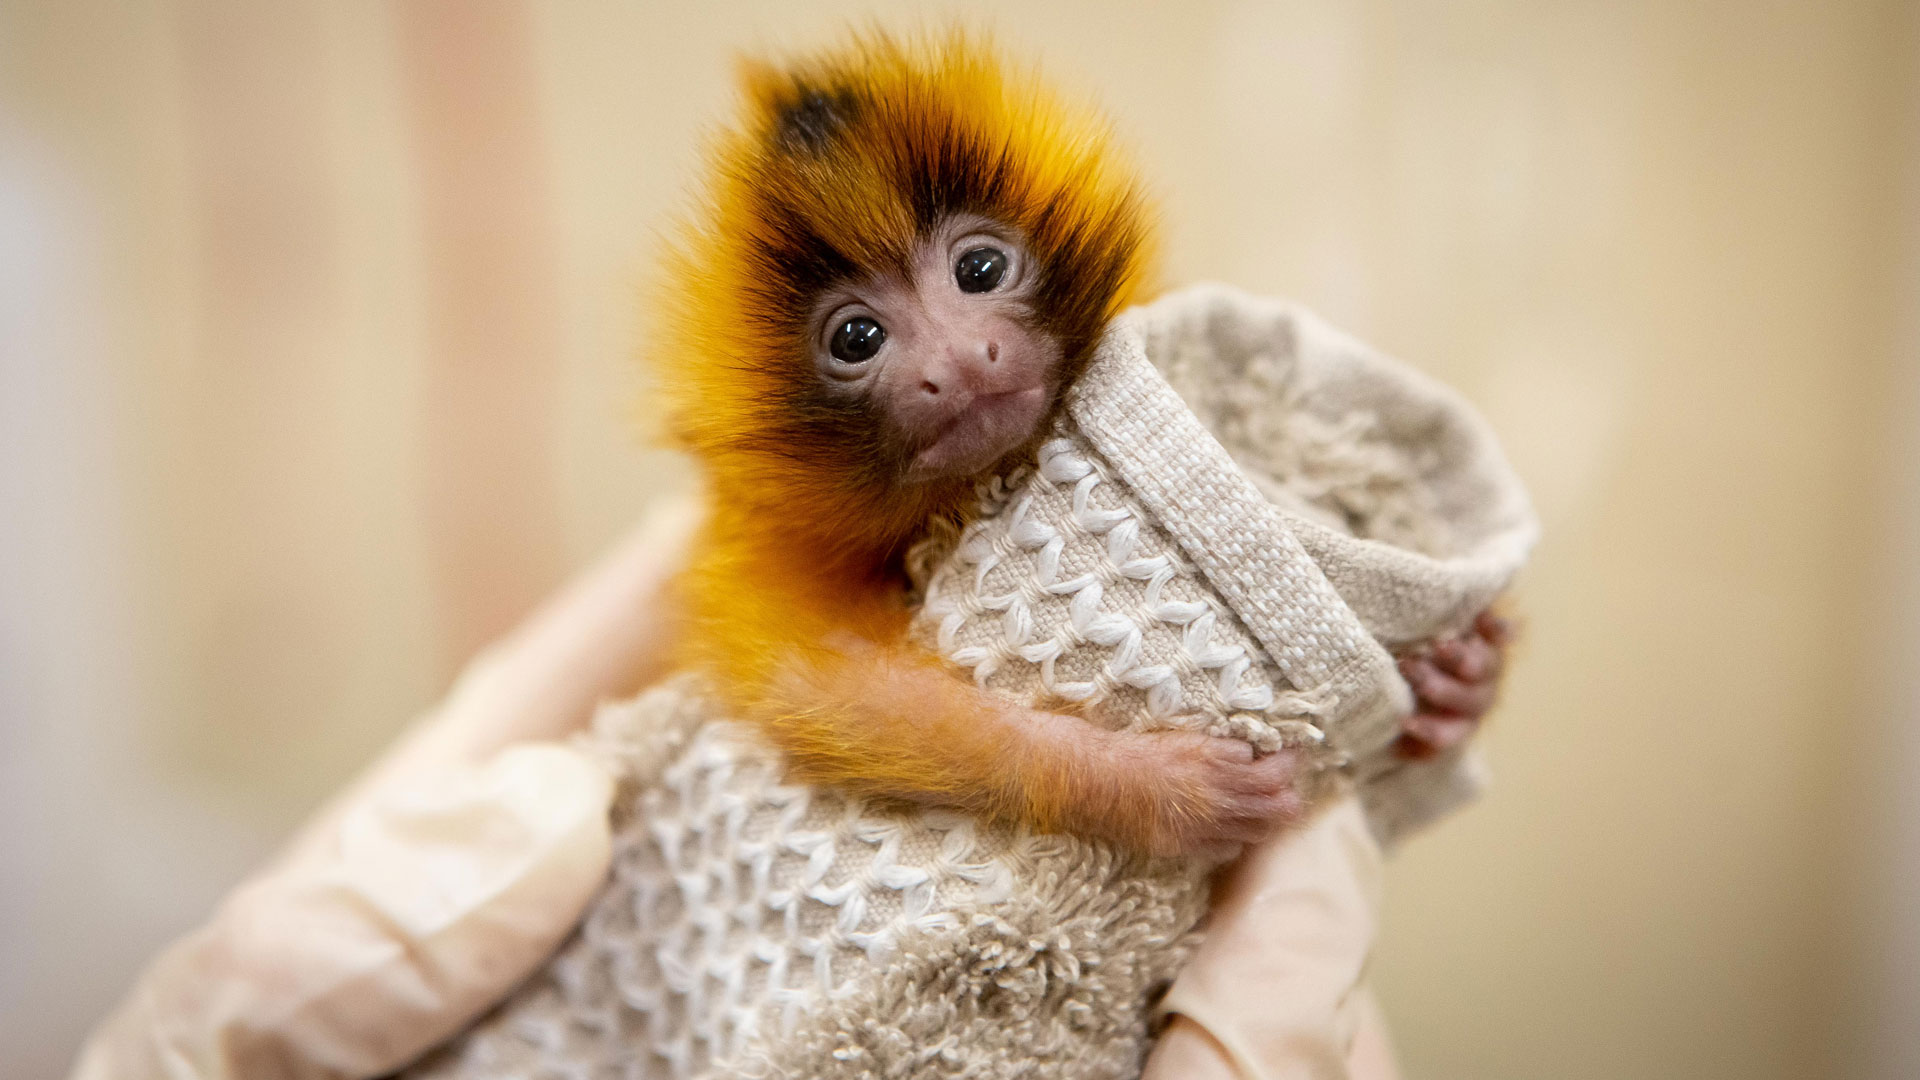 https://rfacdn.nz/zoo/assets/media/golden-lion-tamarin-twins-gallery-6.jpg